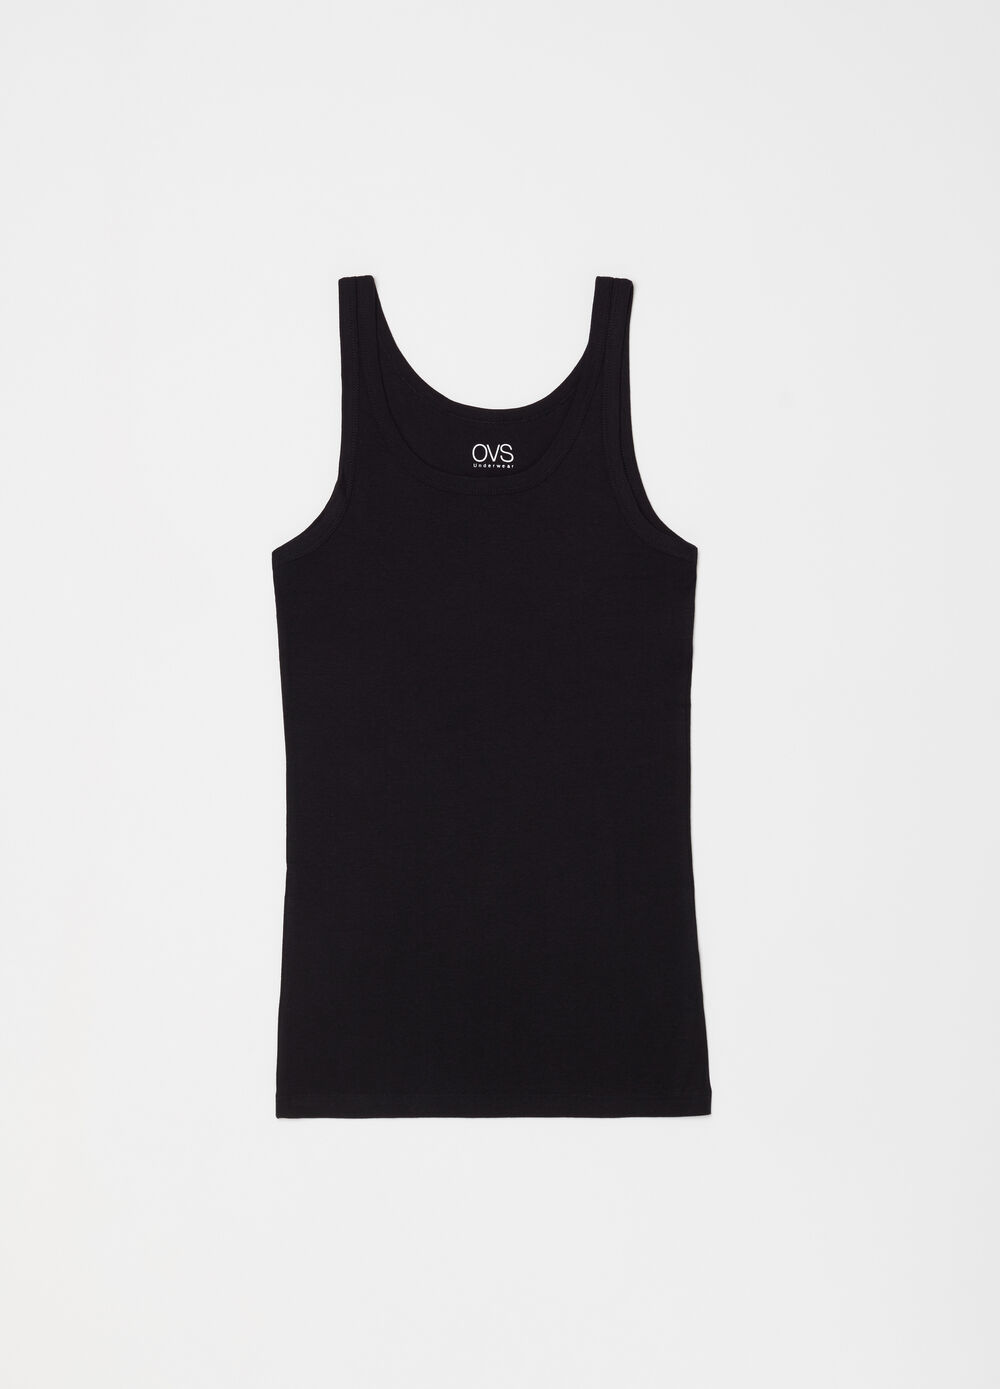 Two-pack ribbed racerback tops in 100% cotton